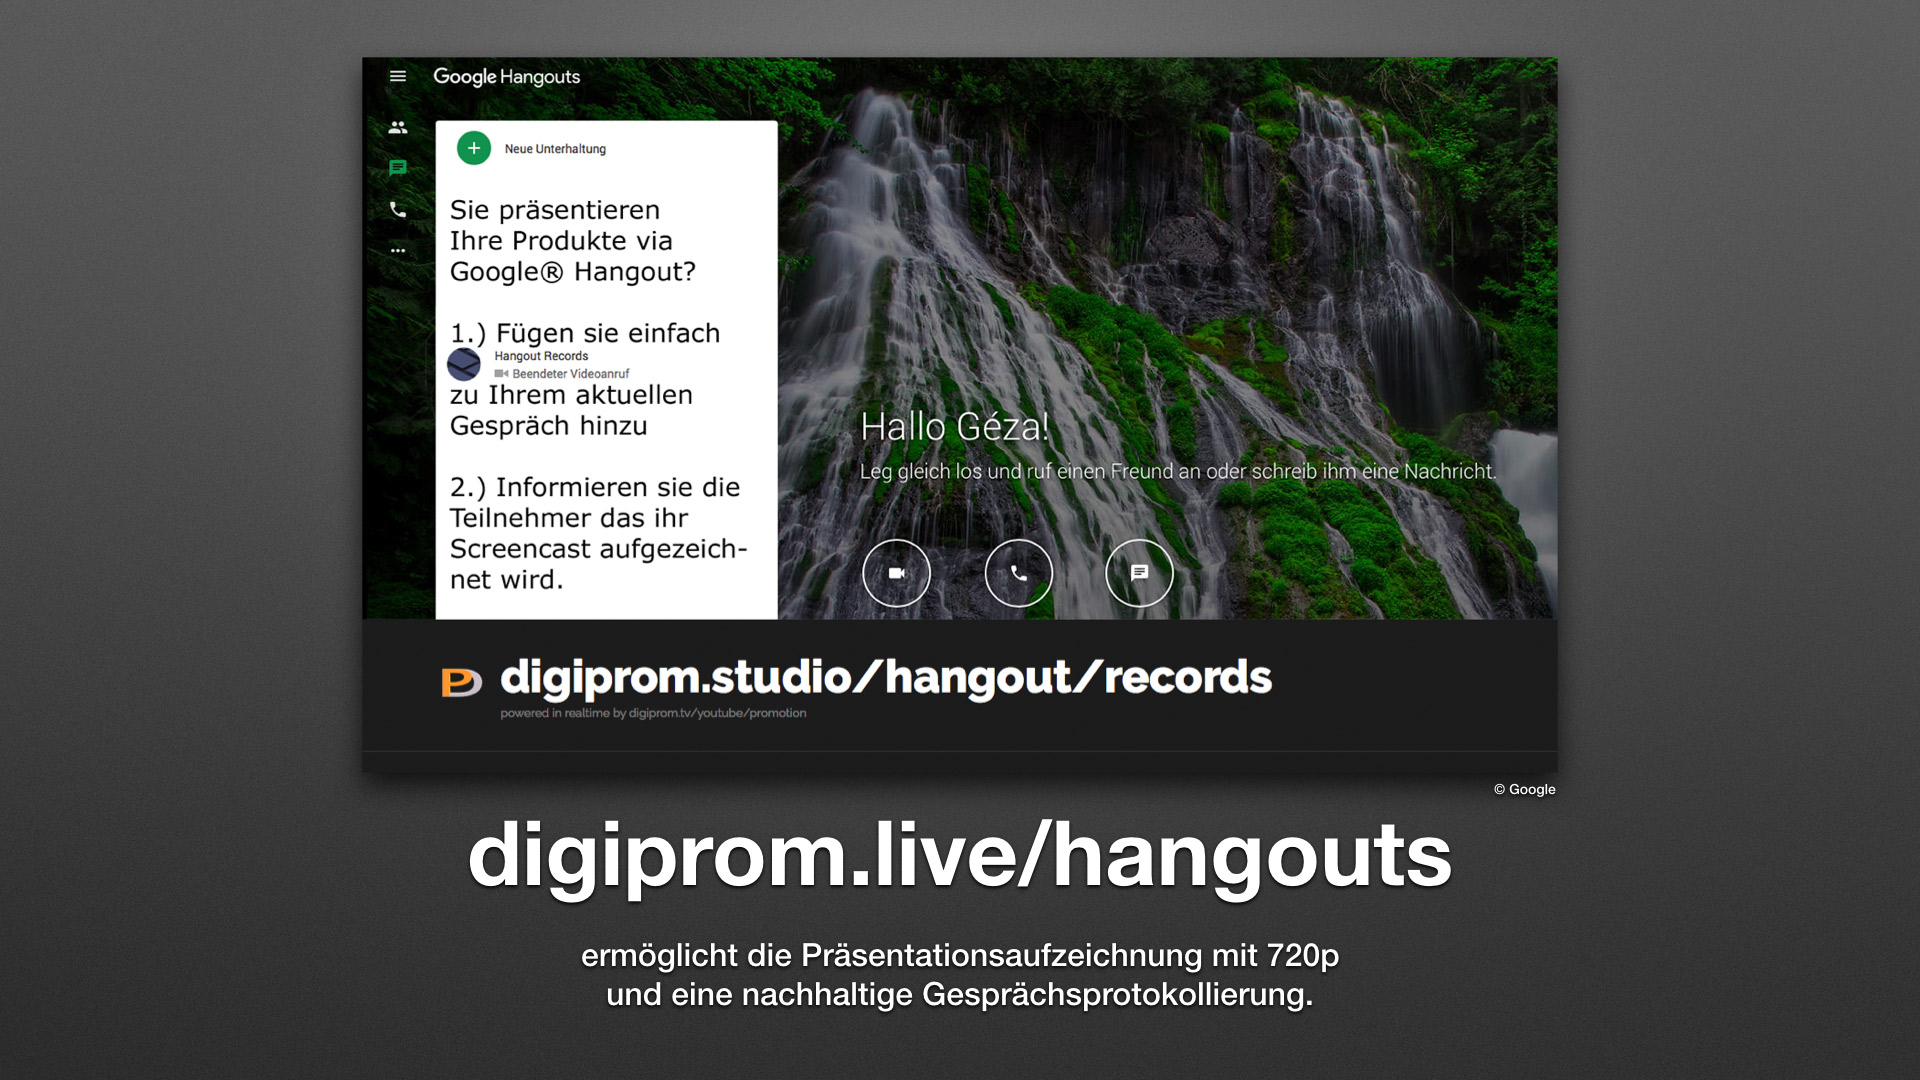 digiprom.network